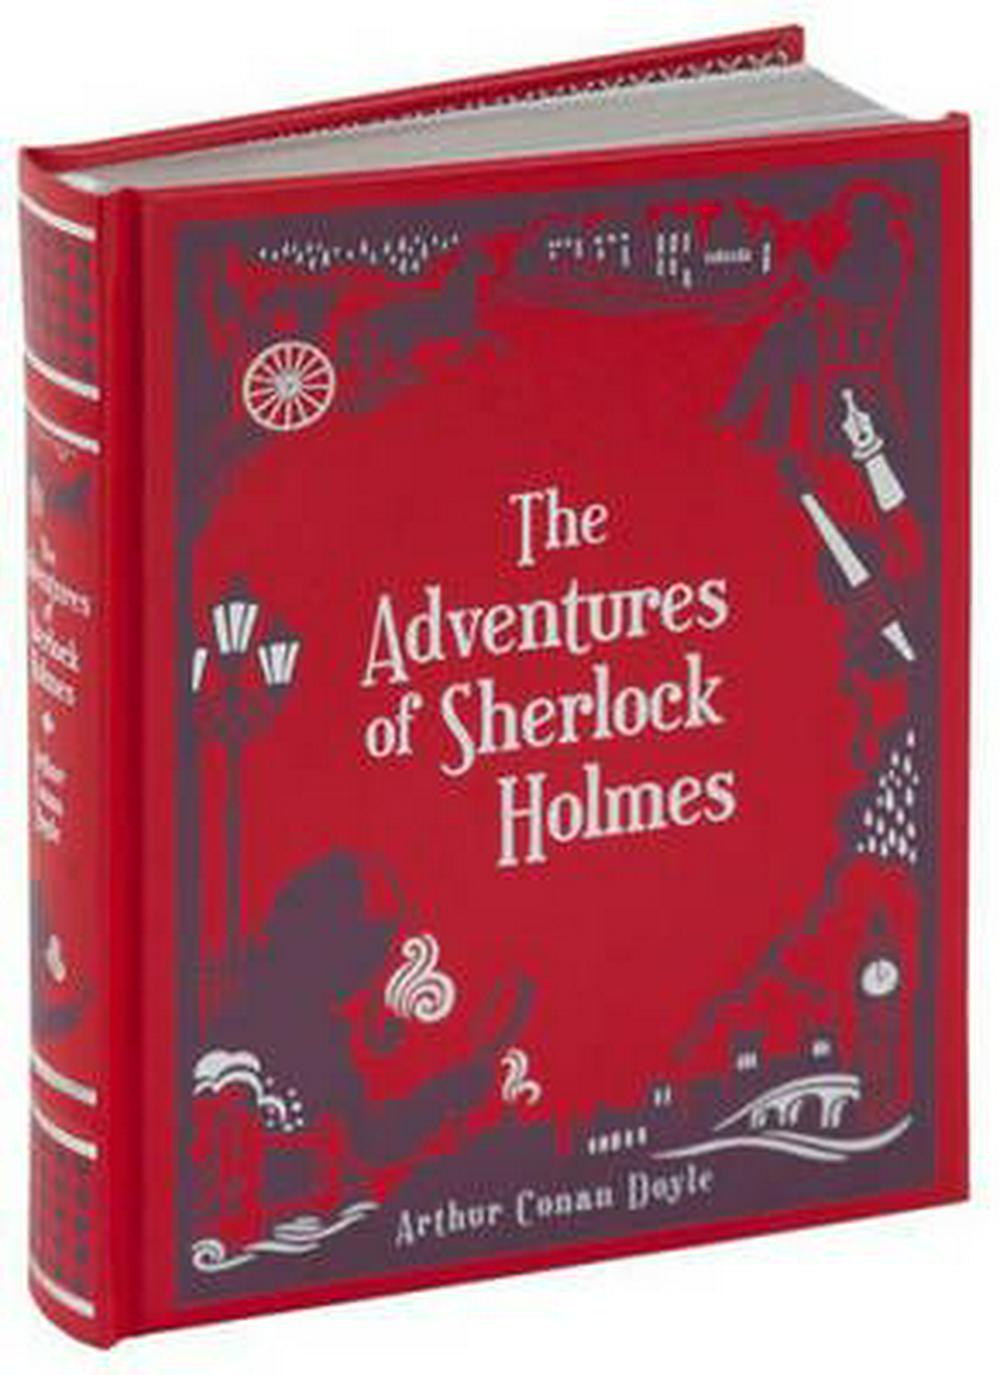 The Adventures of Sherlock Holmes (Barnes & Noble Leatherbound Children's Classics) by Arthur Conan Doyle, ISBN: 9781435148109